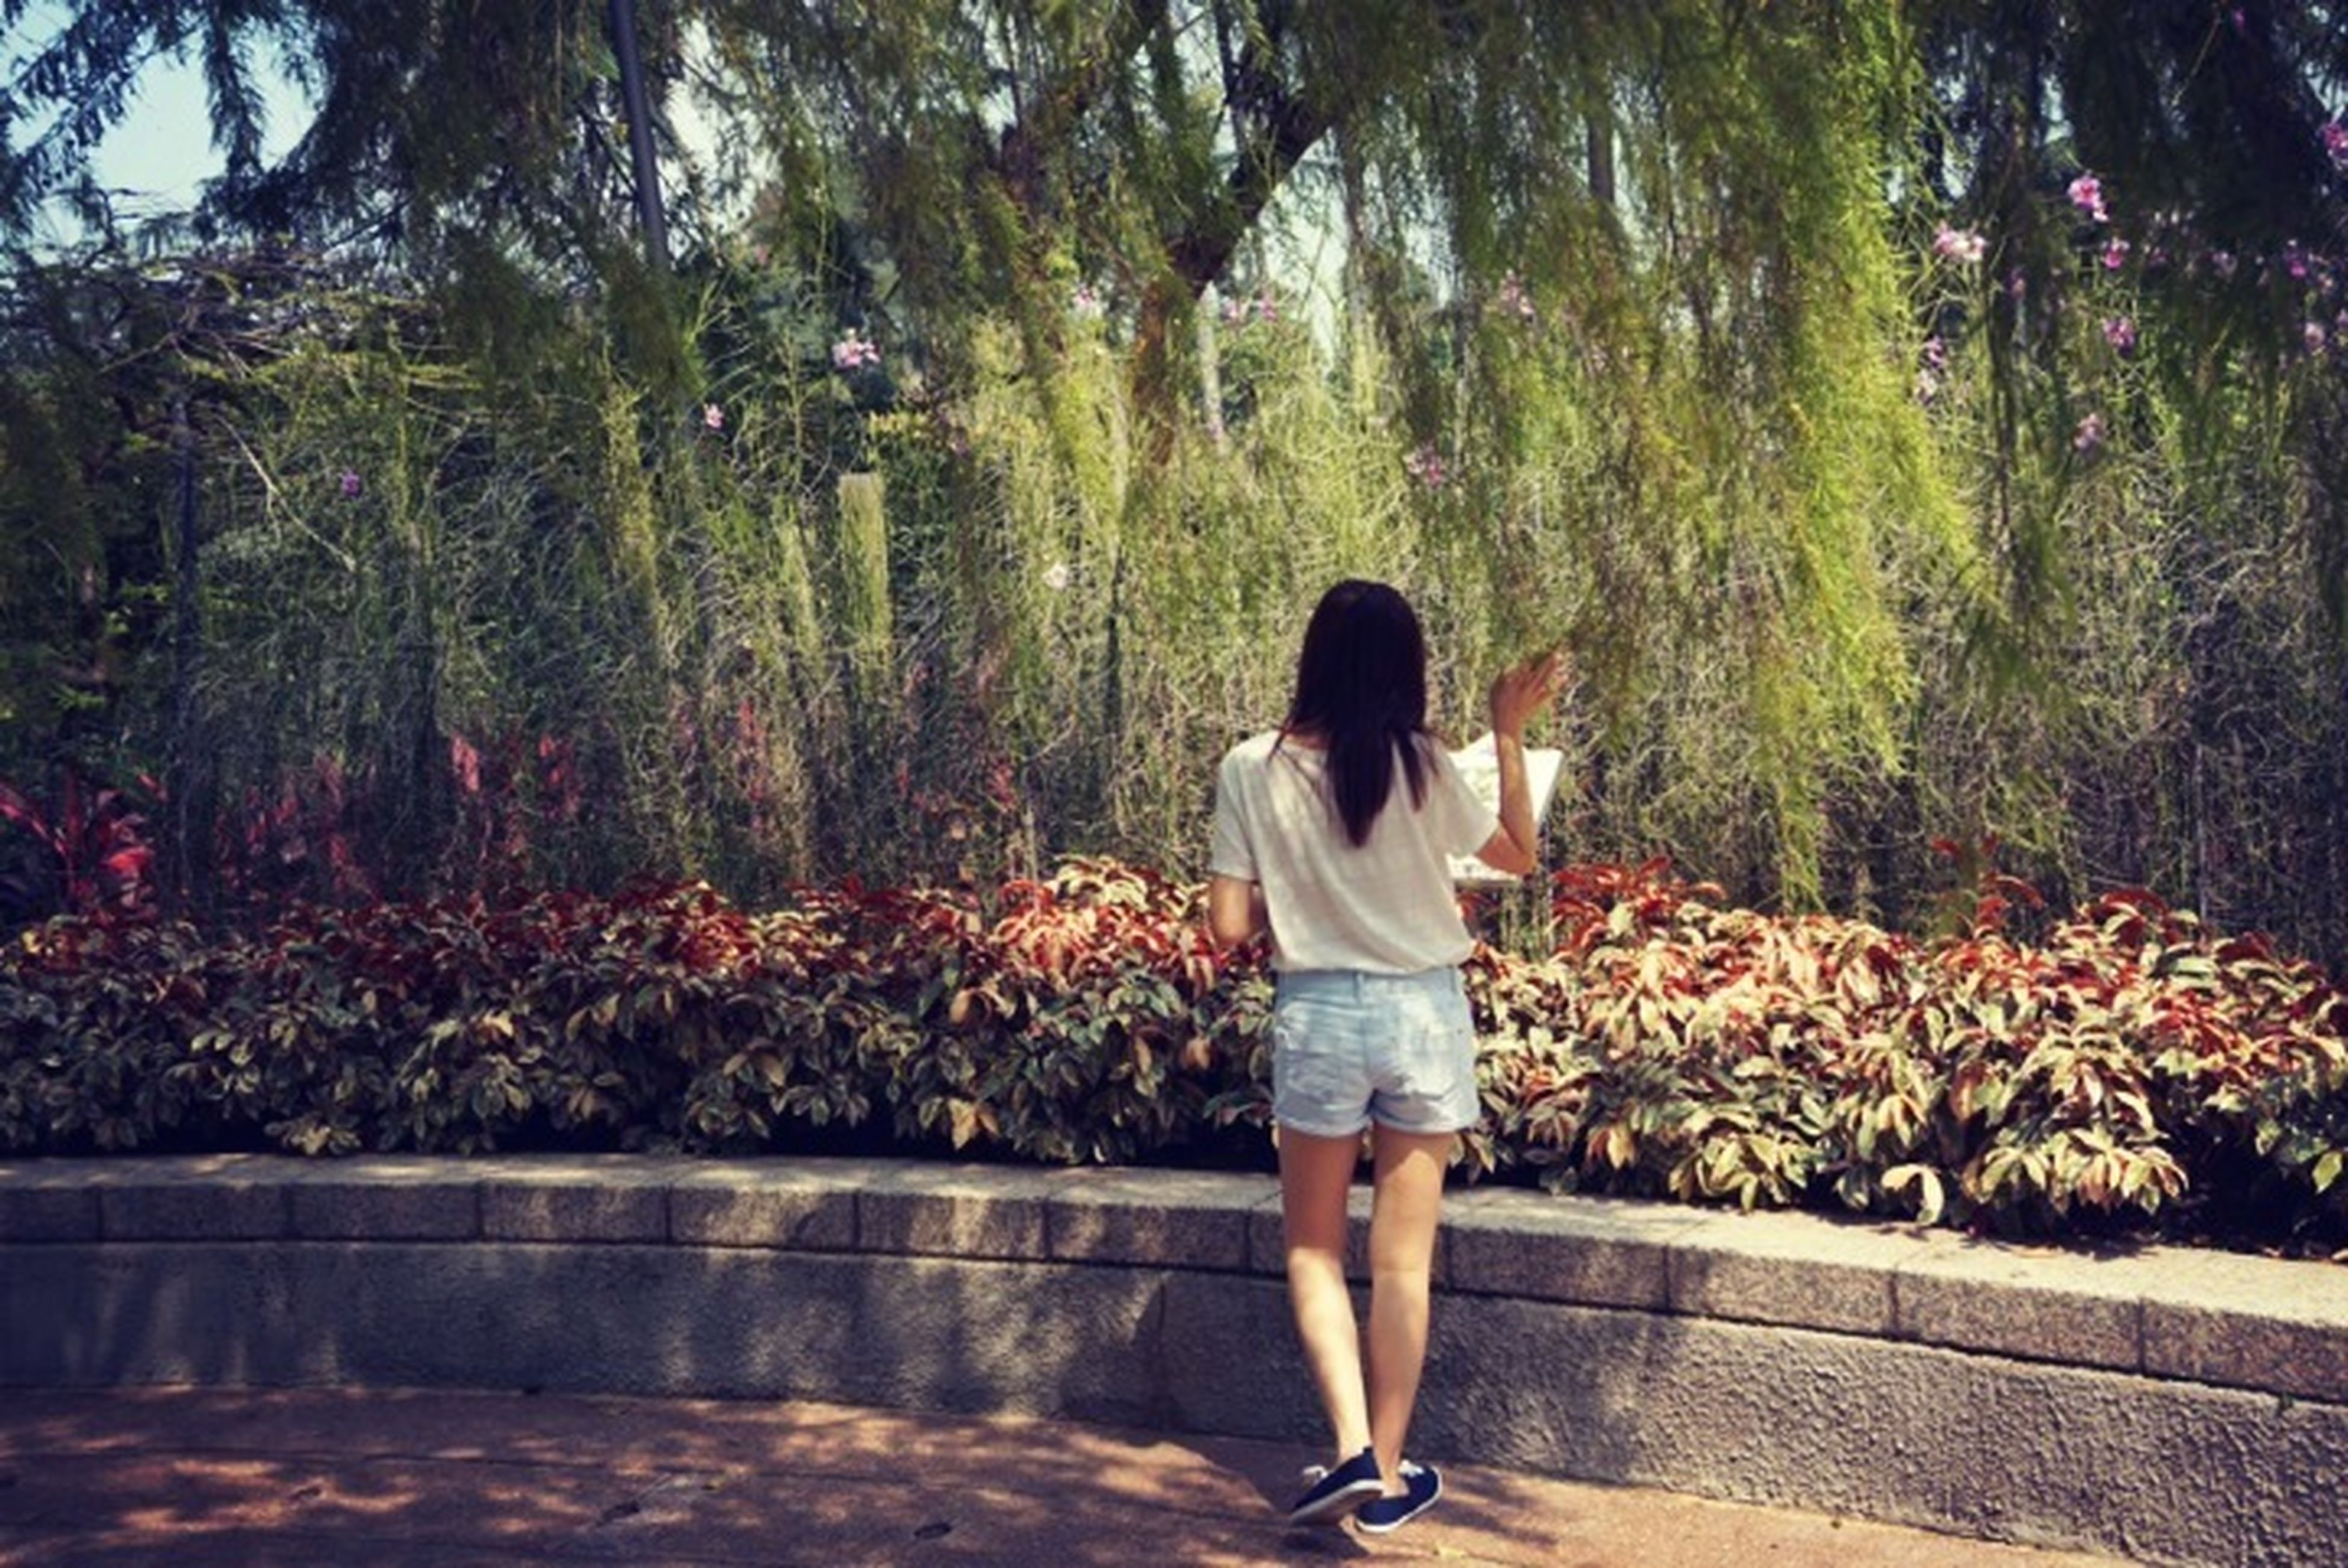 tree, full length, casual clothing, standing, lifestyles, rear view, leisure activity, growth, nature, plant, person, childhood, day, outdoors, beauty in nature, park - man made space, forest, girls